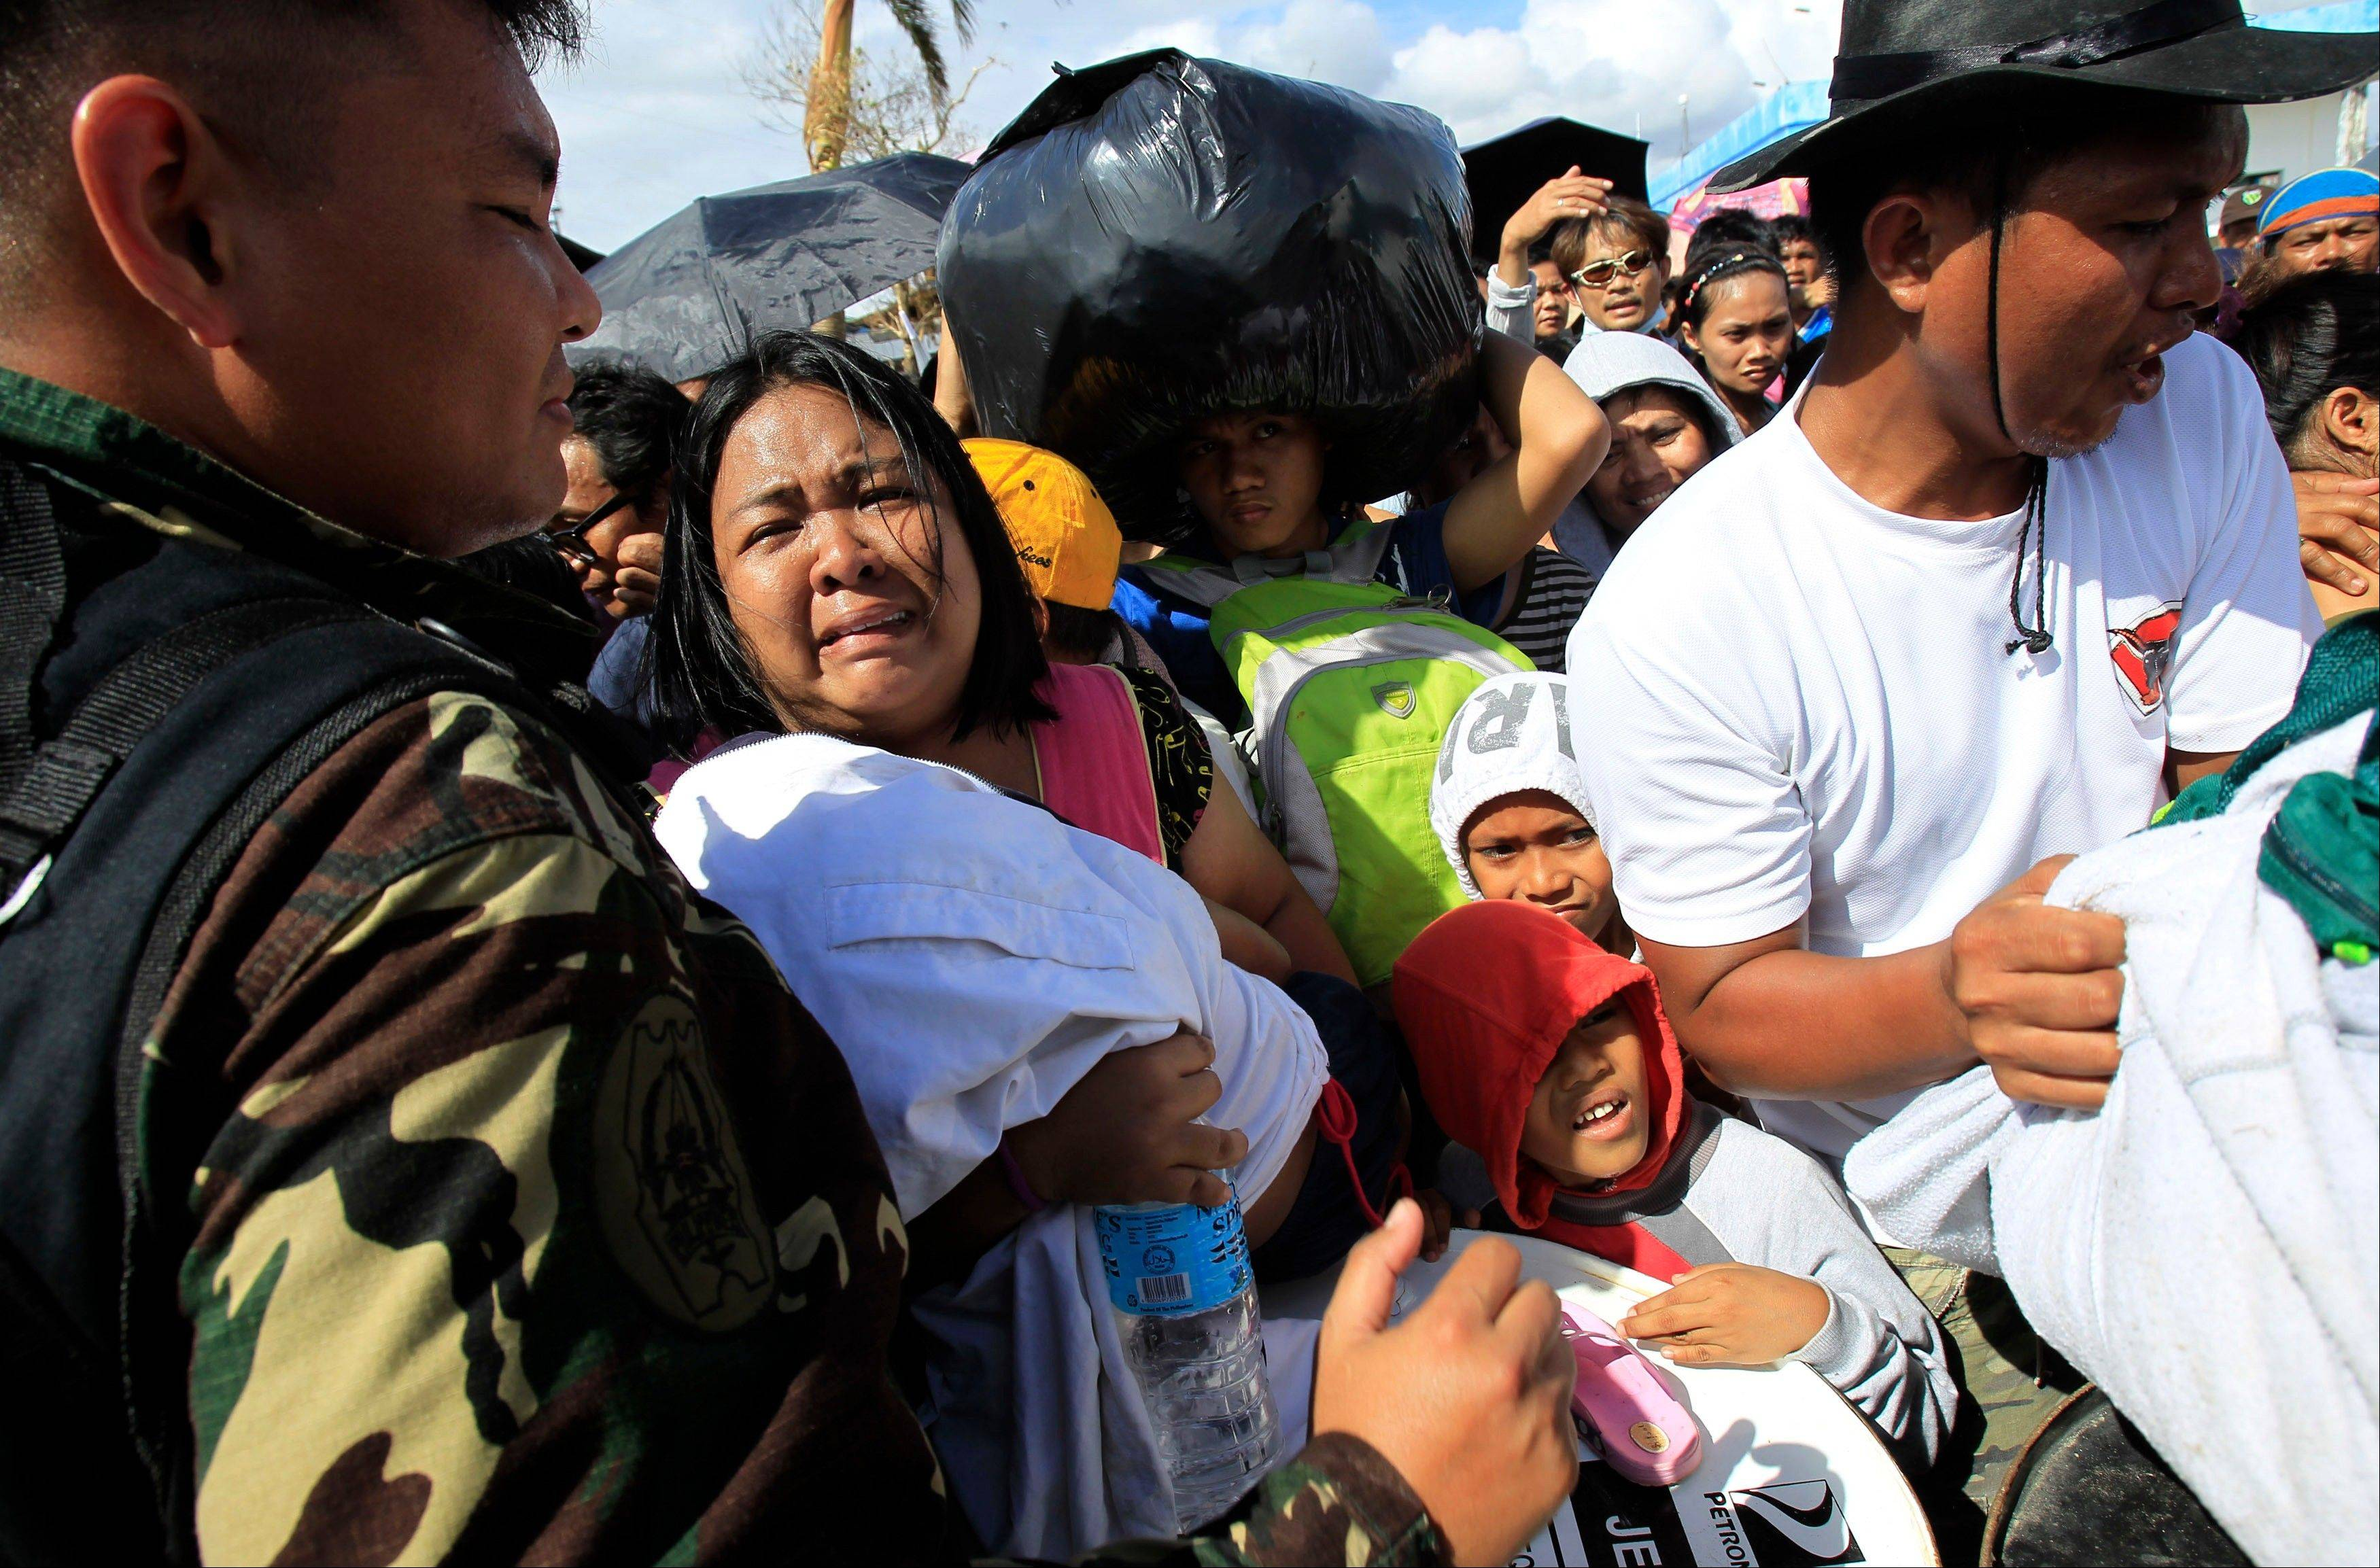 A woman and her child plead from the frantic crowd to be prioritized on an evacuation flight in Tacloban, central Philippines, Thursday, Nov. 14, 2013. Typhoon Haiyan, one of the most powerful storms on record, hit the country's eastern seaboard on Friday, destroying tens of thousands of buildings and displacing hundreds of thousands of people.